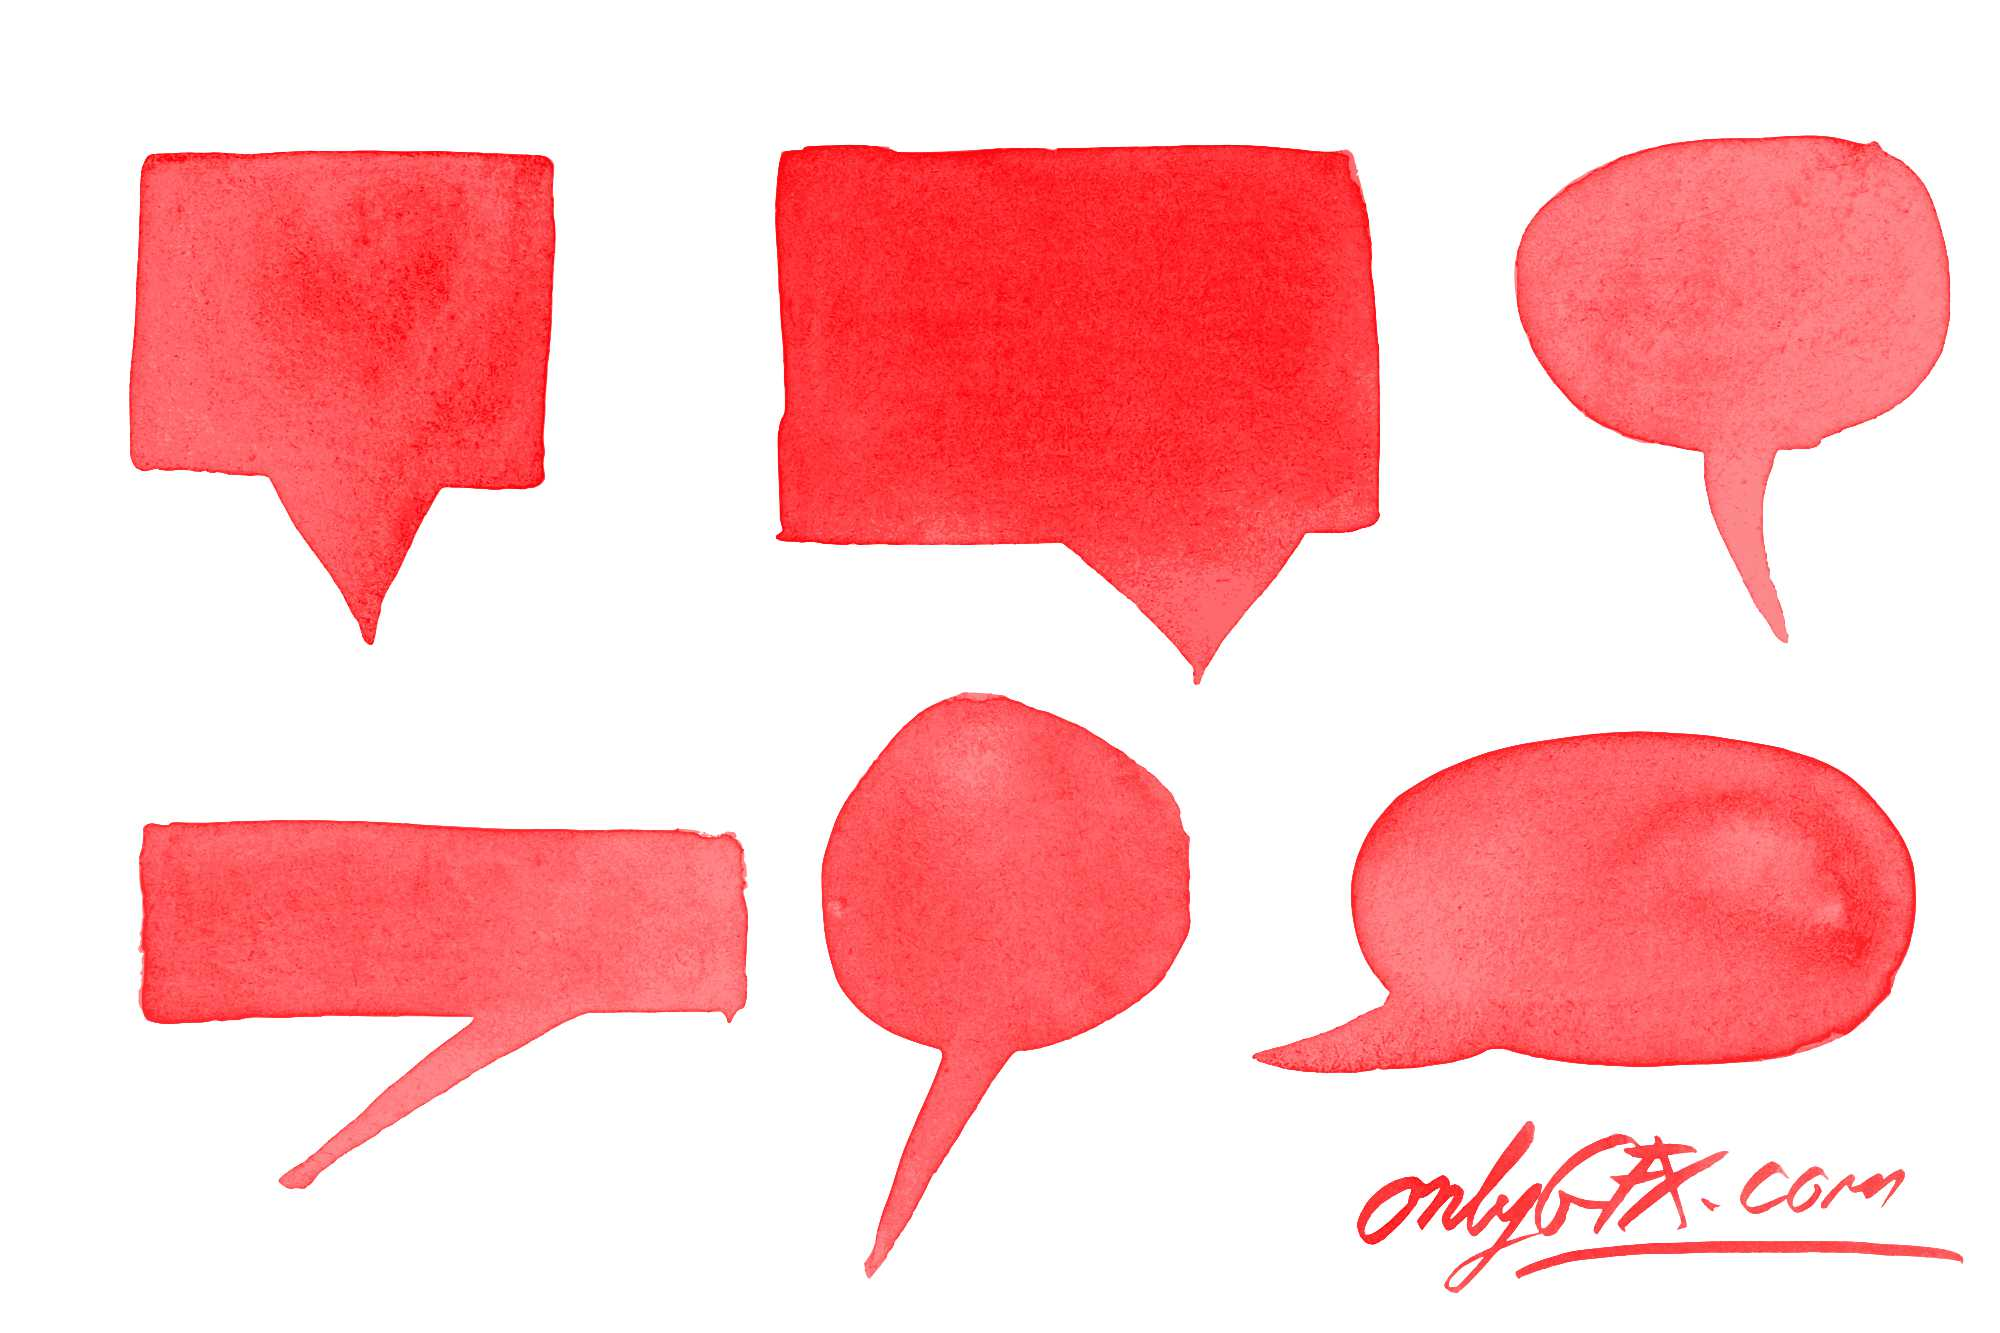 red-watercolor-speech-bubble-cover.jpg